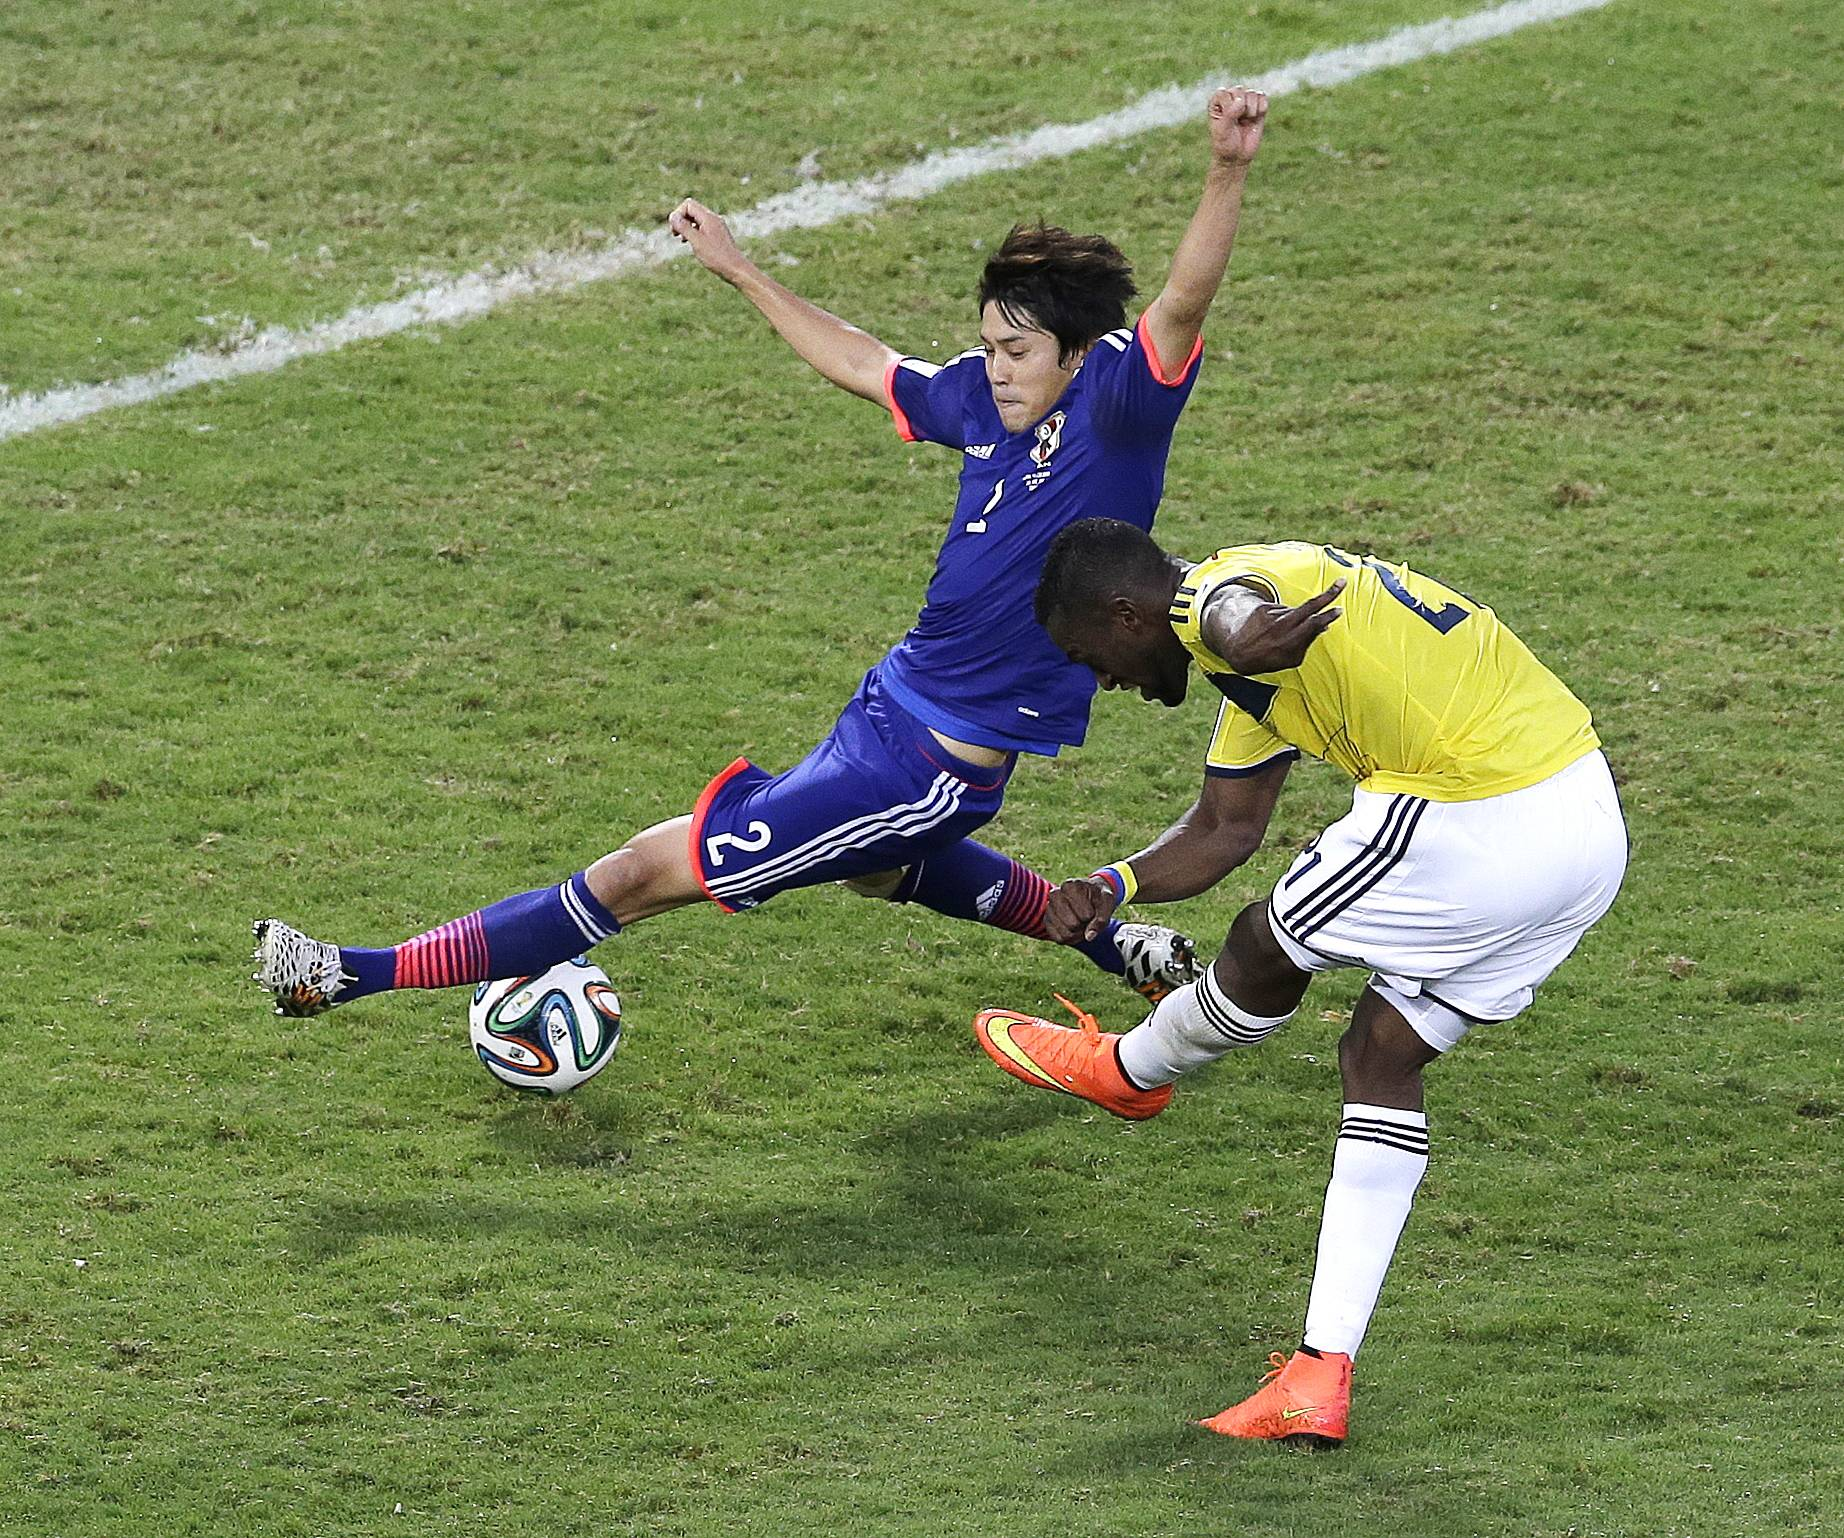 Colombia forward Jackson Martinez, right, scores past Japan defender Atsuto Uchida during the second half of a group C World Cup soccer match at the Arena Pantanal in Cuiaba, Brazil, Tuesday, June 24, 2014.